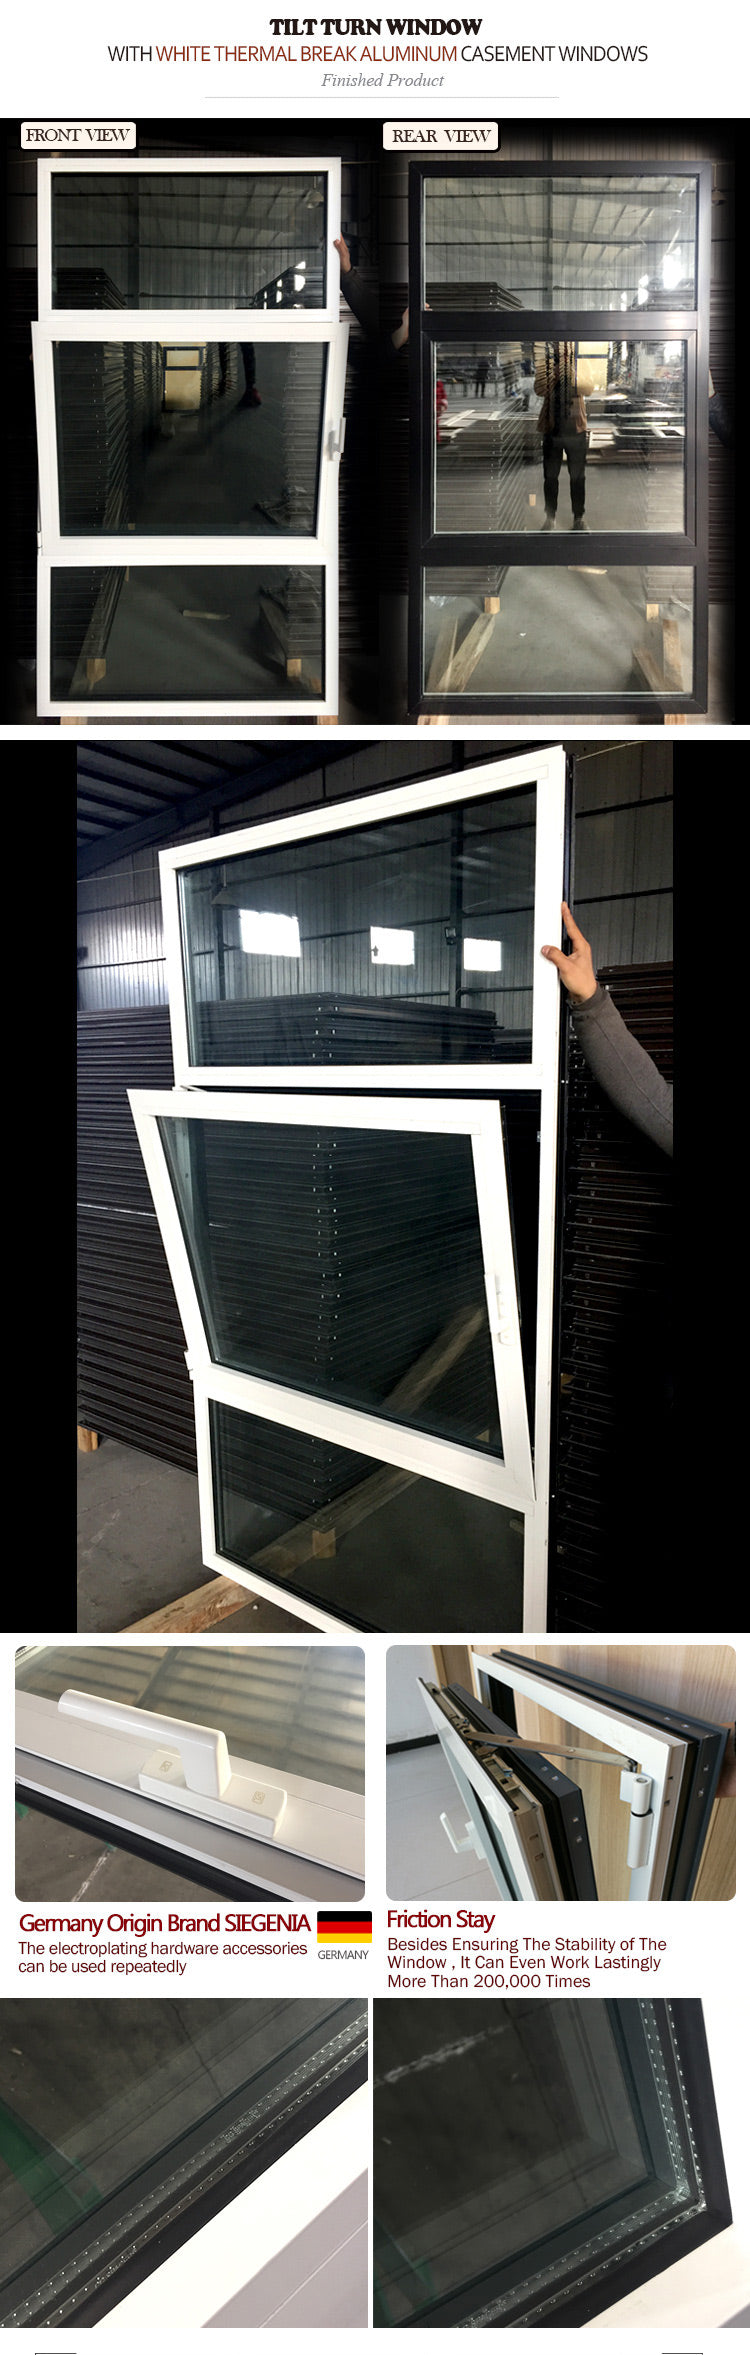 tilt turn window-26-01